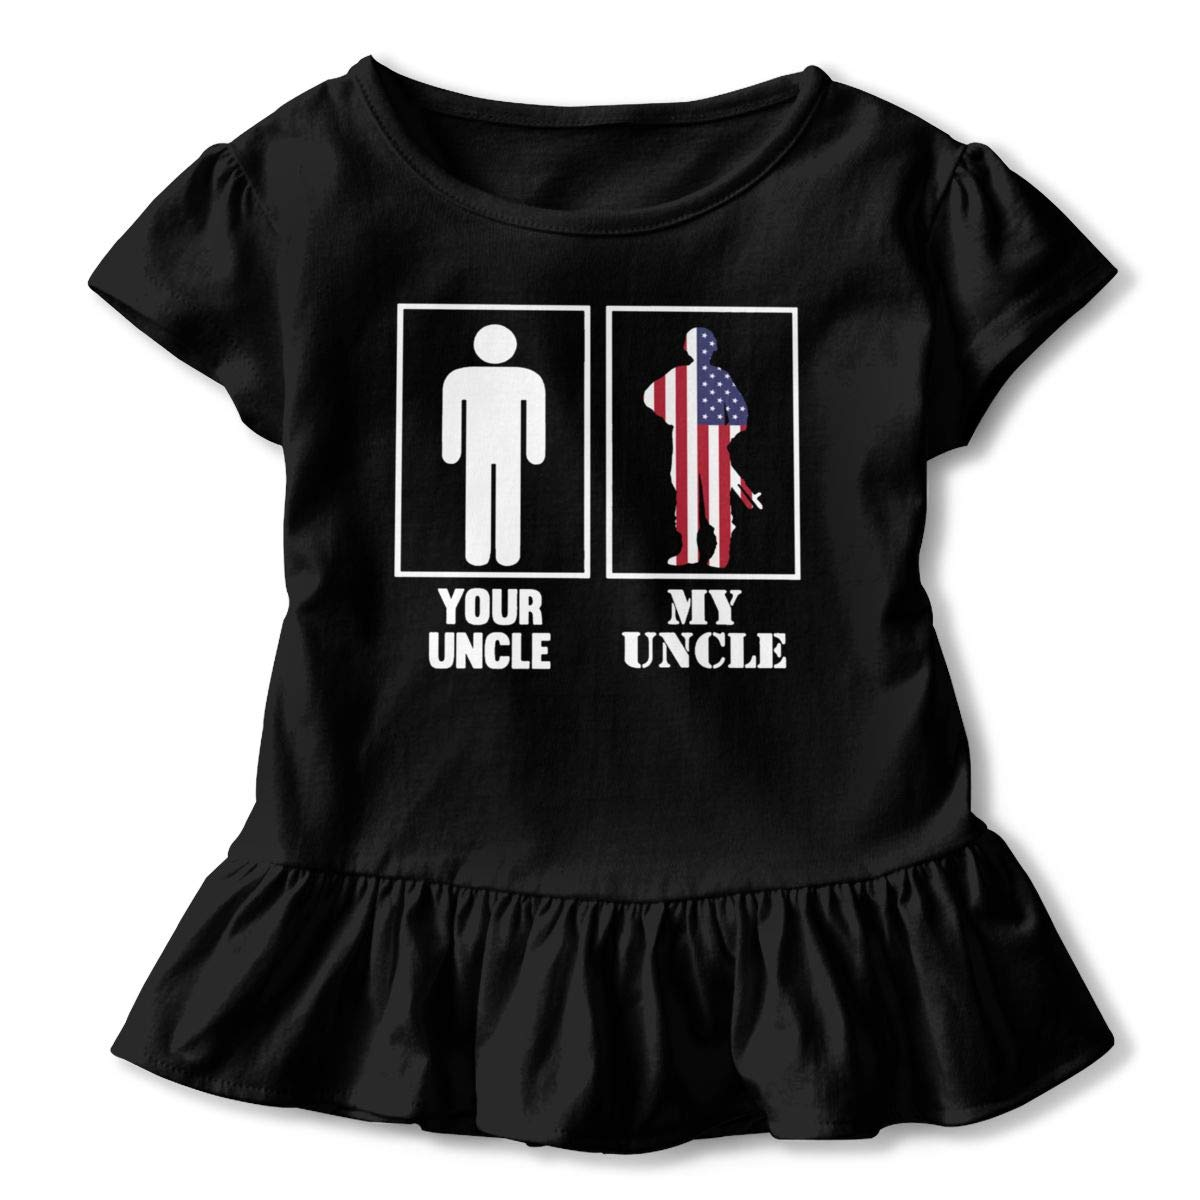 JVNSS Your Uncle My Uncle T-Shirt Kids Flounced T Shirts Soft Outfits for 2-6T Kids Girls